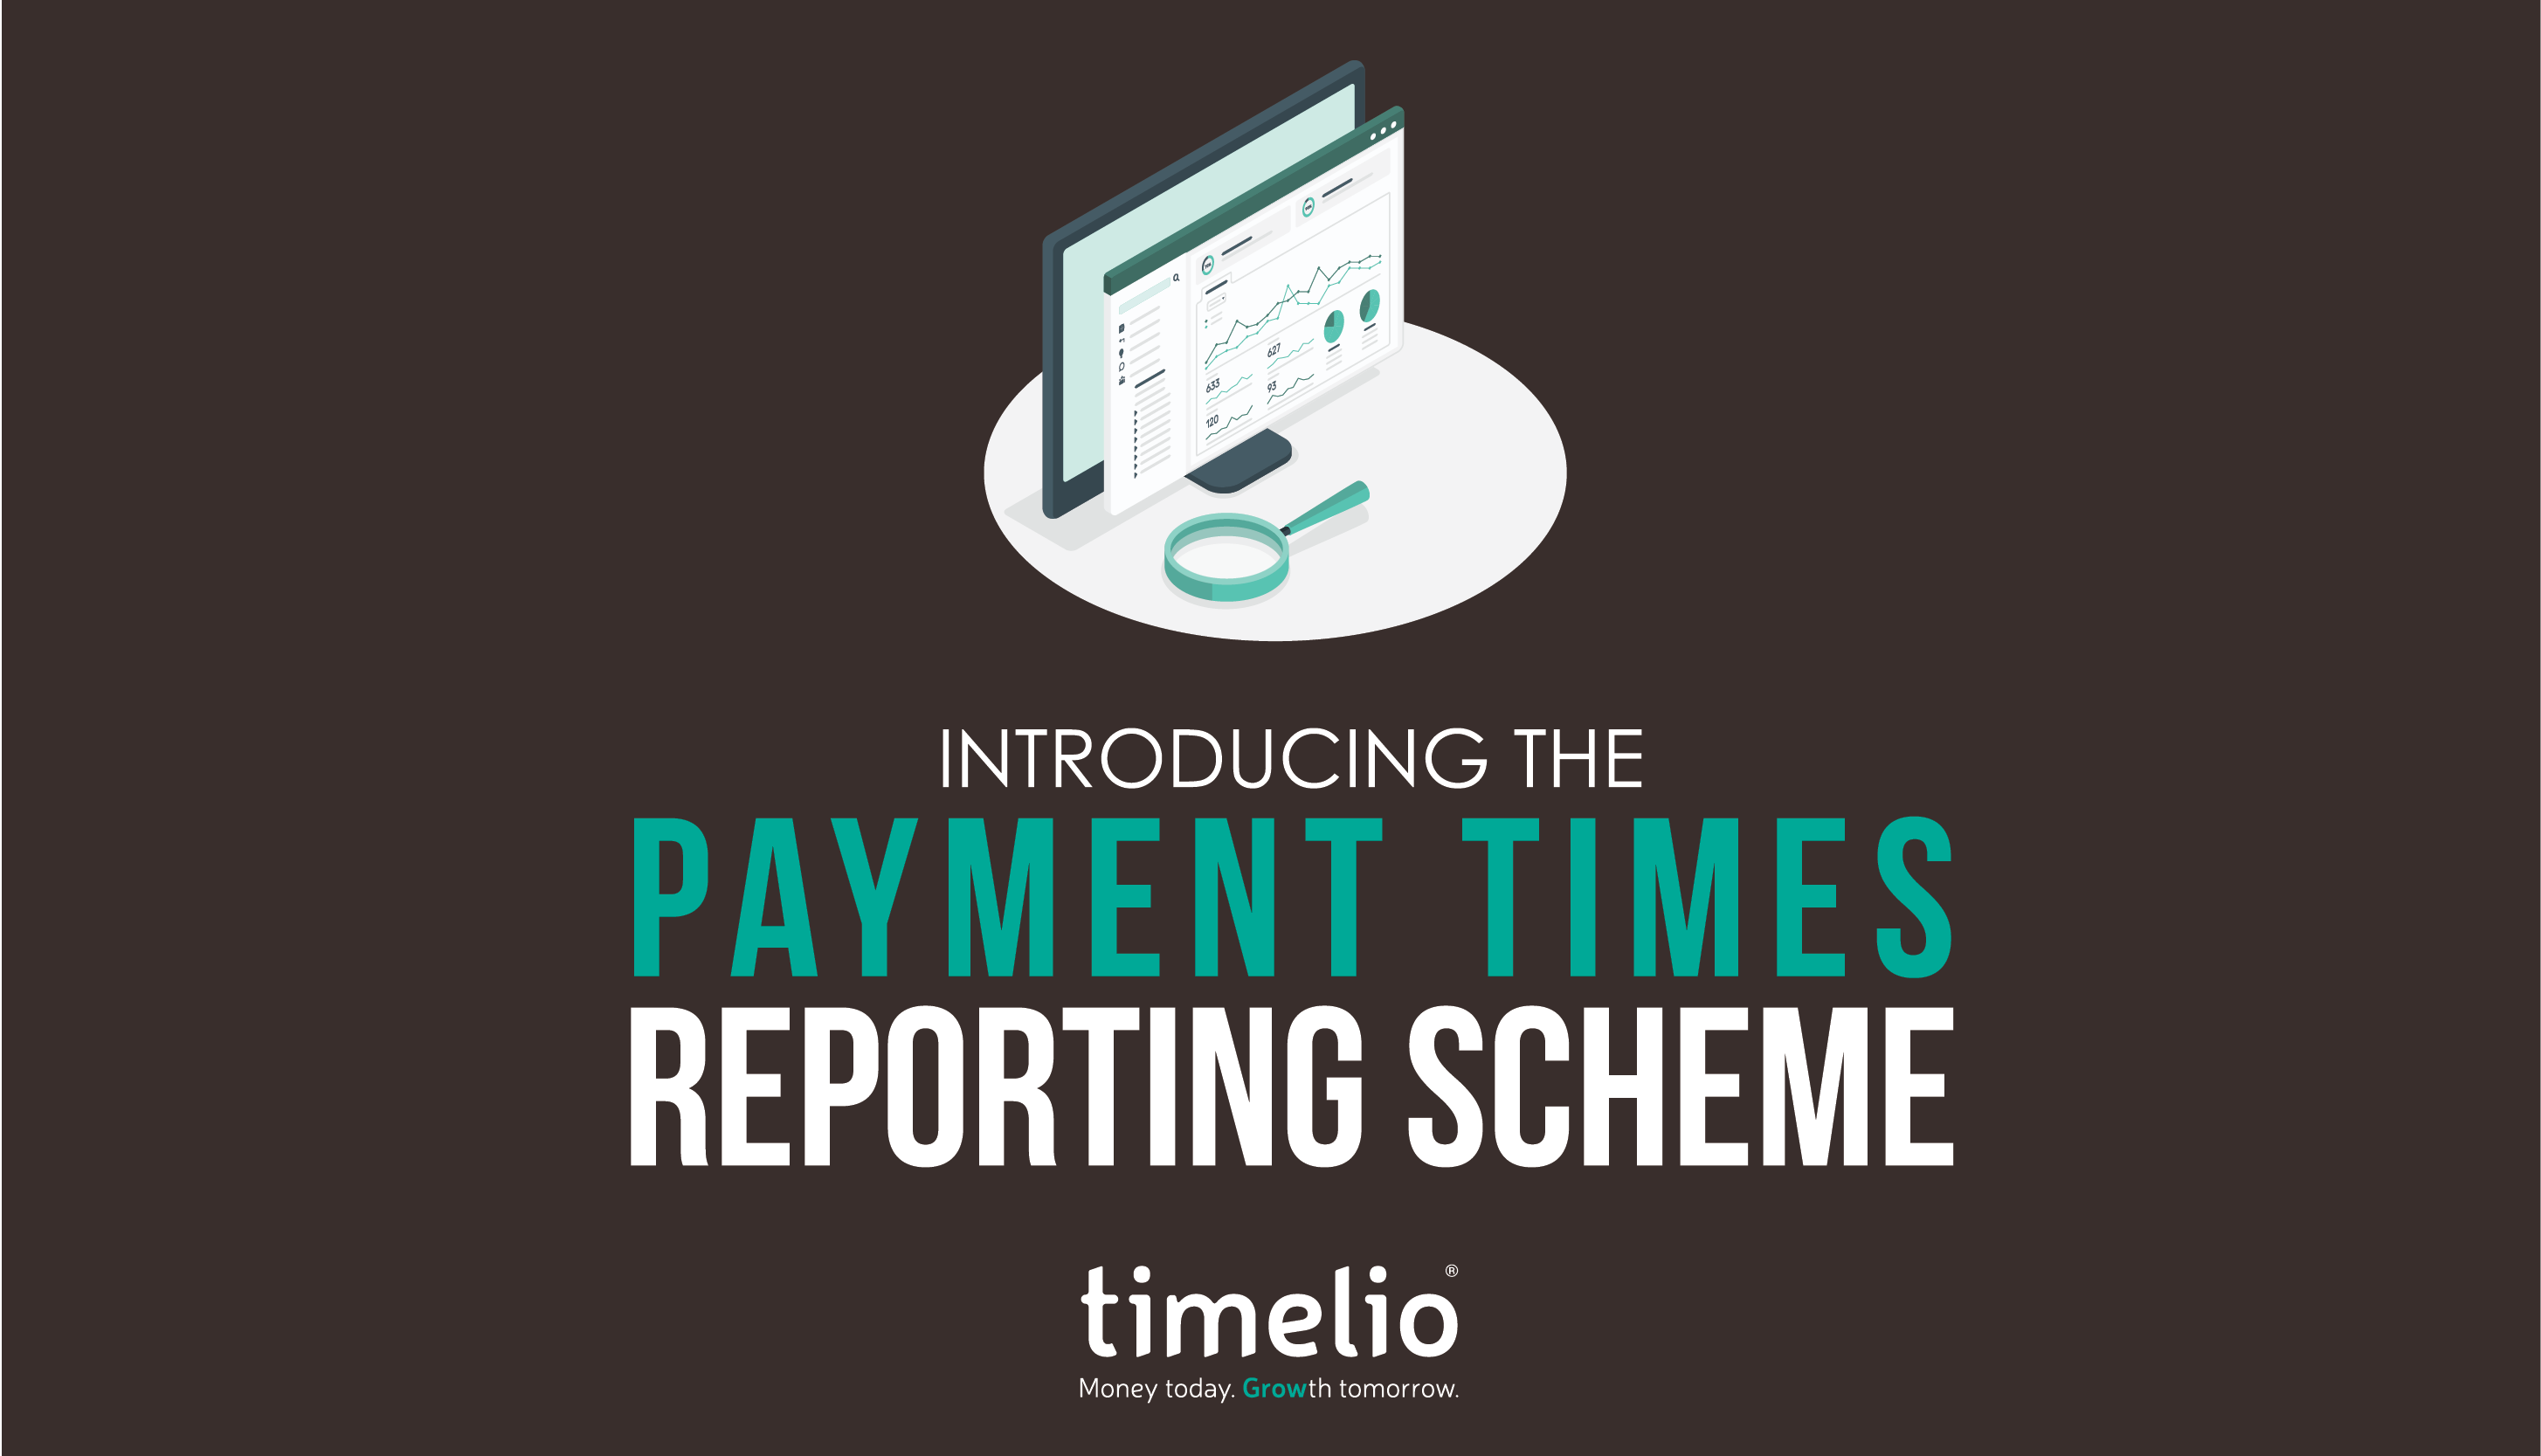 Payment Times Reporting Scheme